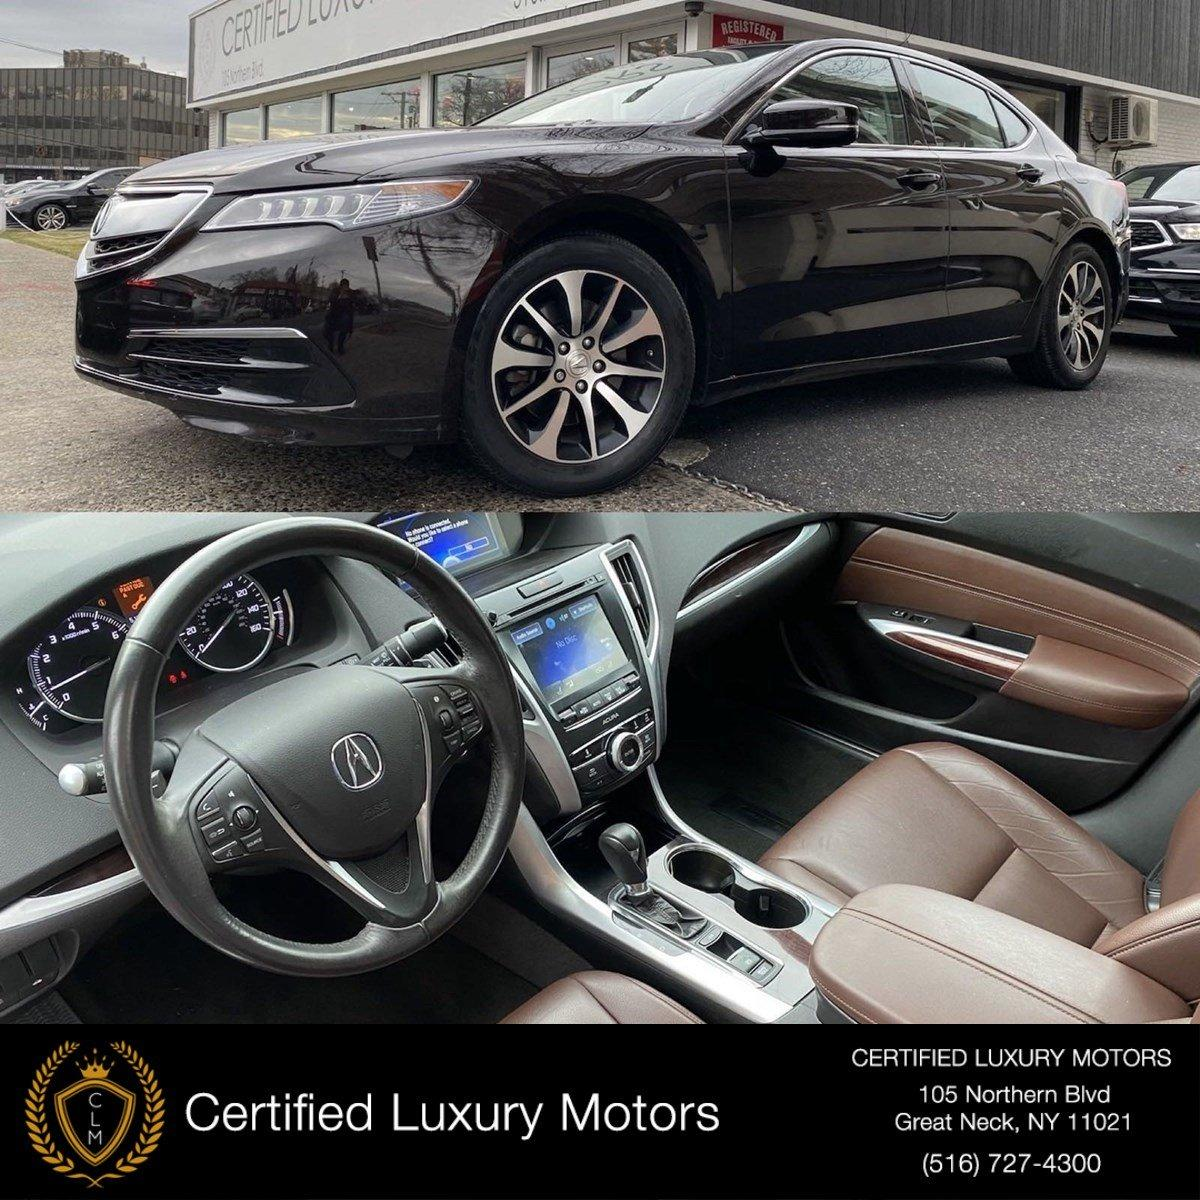 2016 Acura TLX Stock # C0510 For Sale Near Great Neck, NY